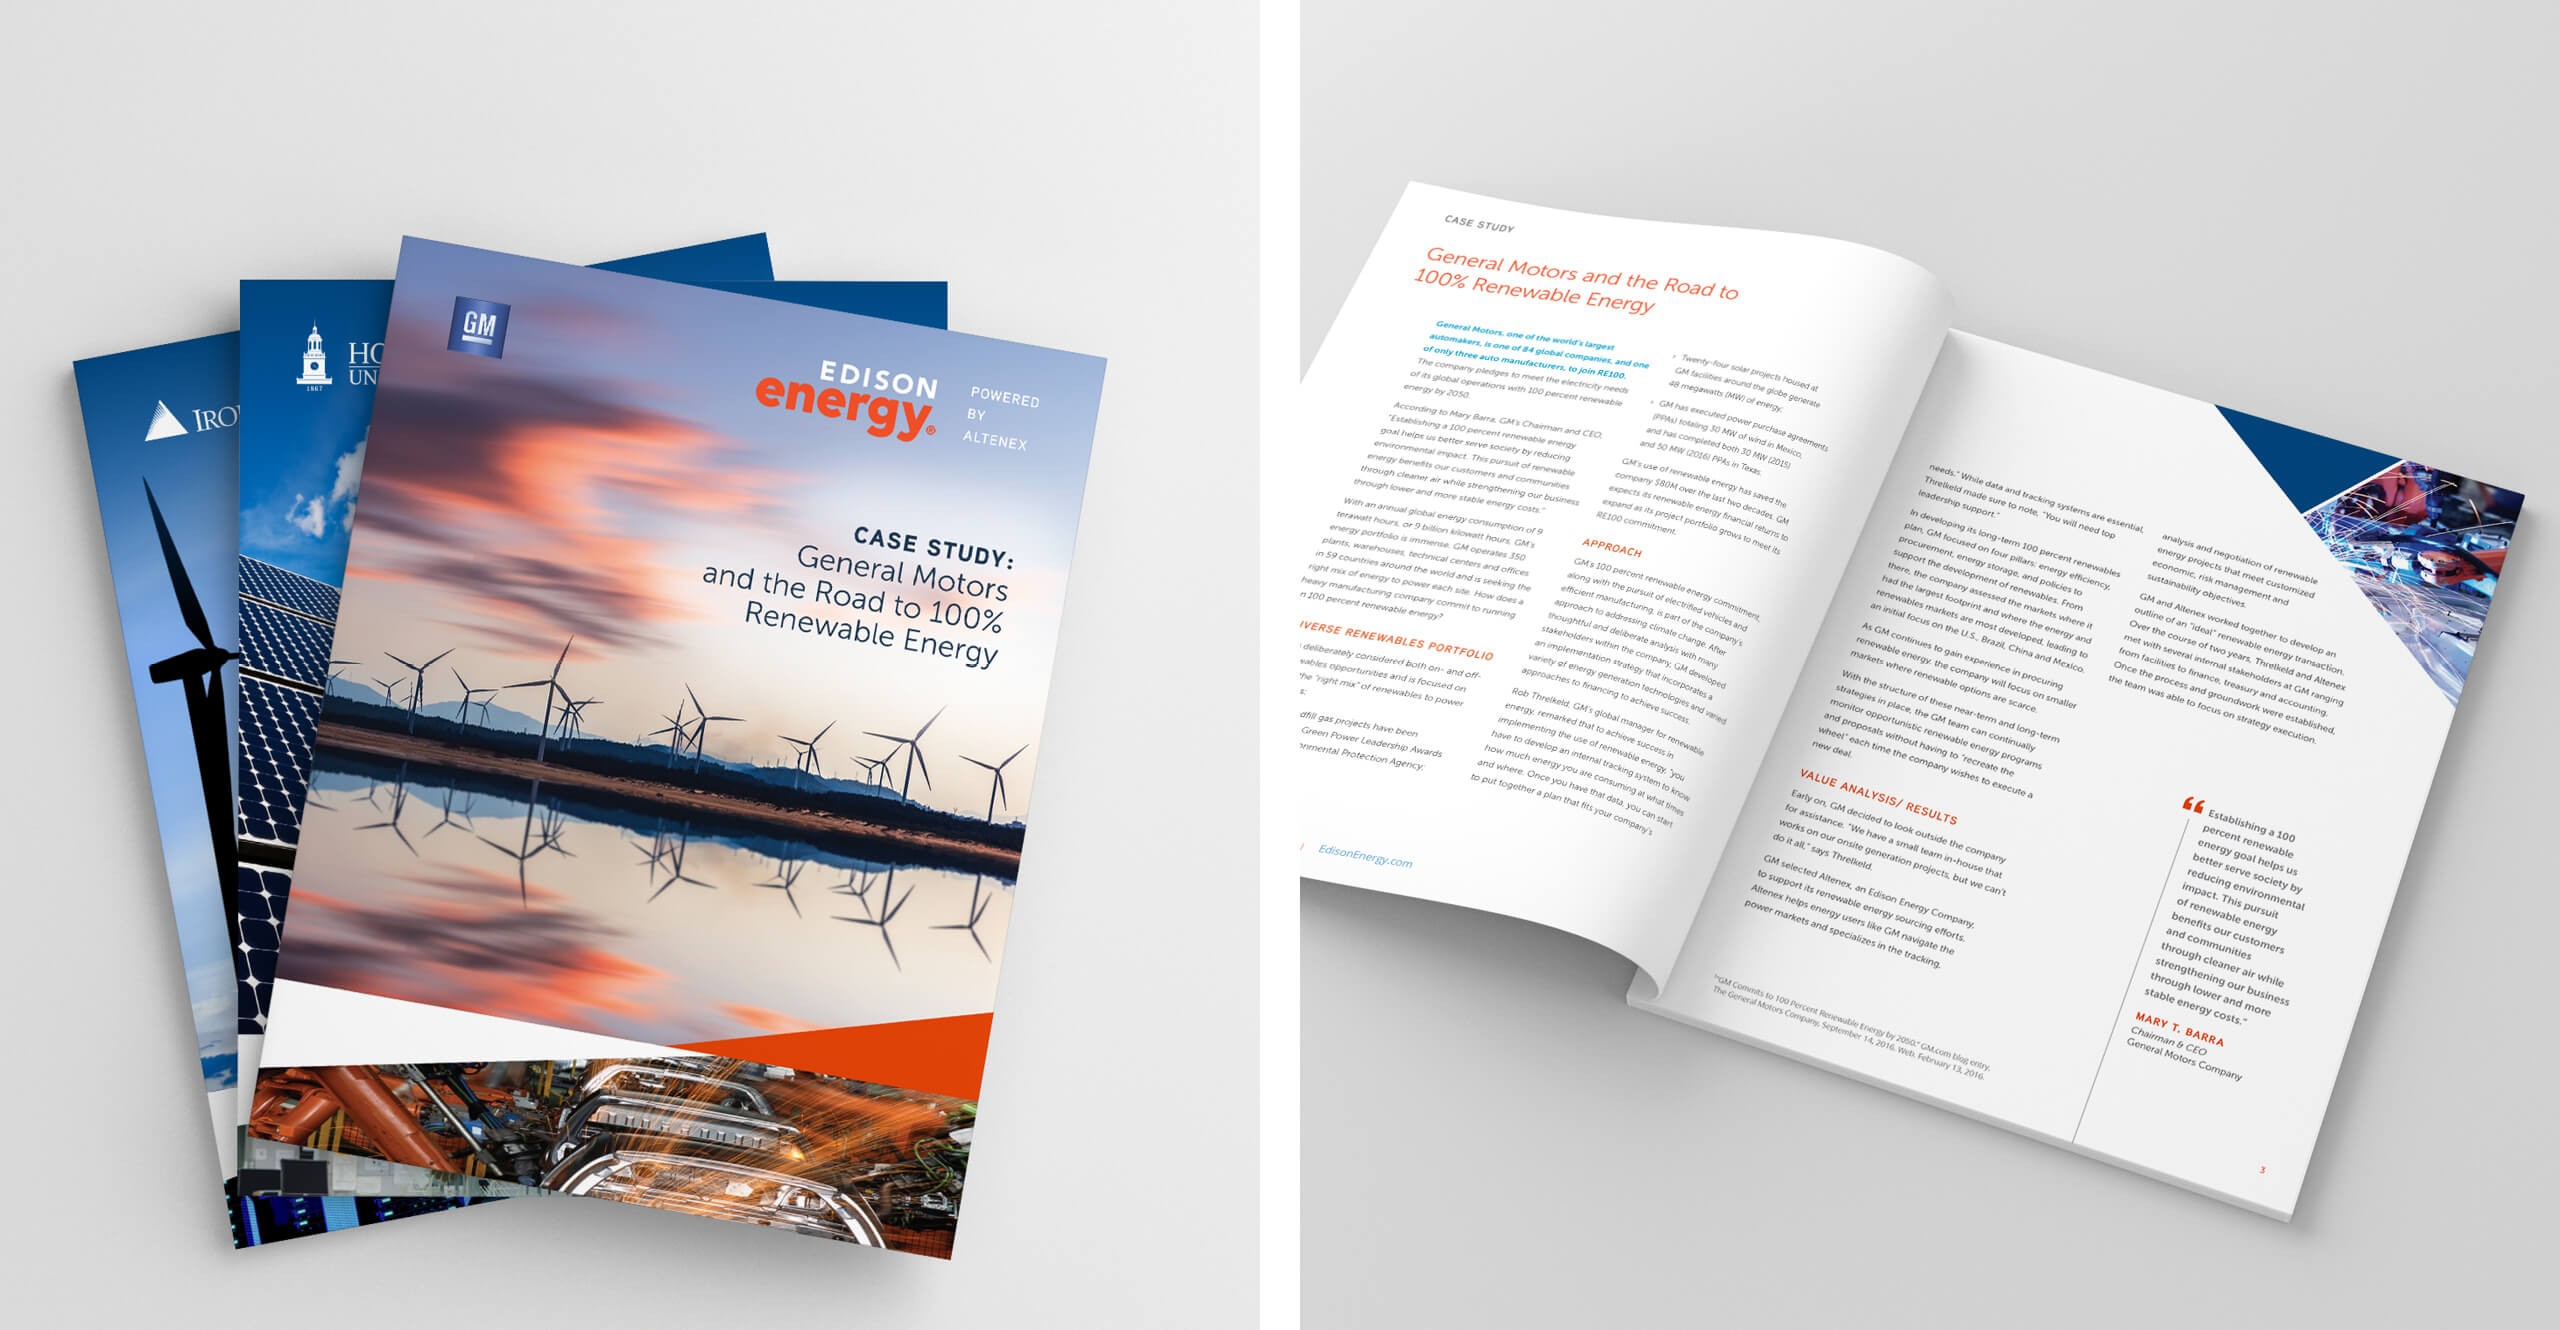 Edison Energy case studies image